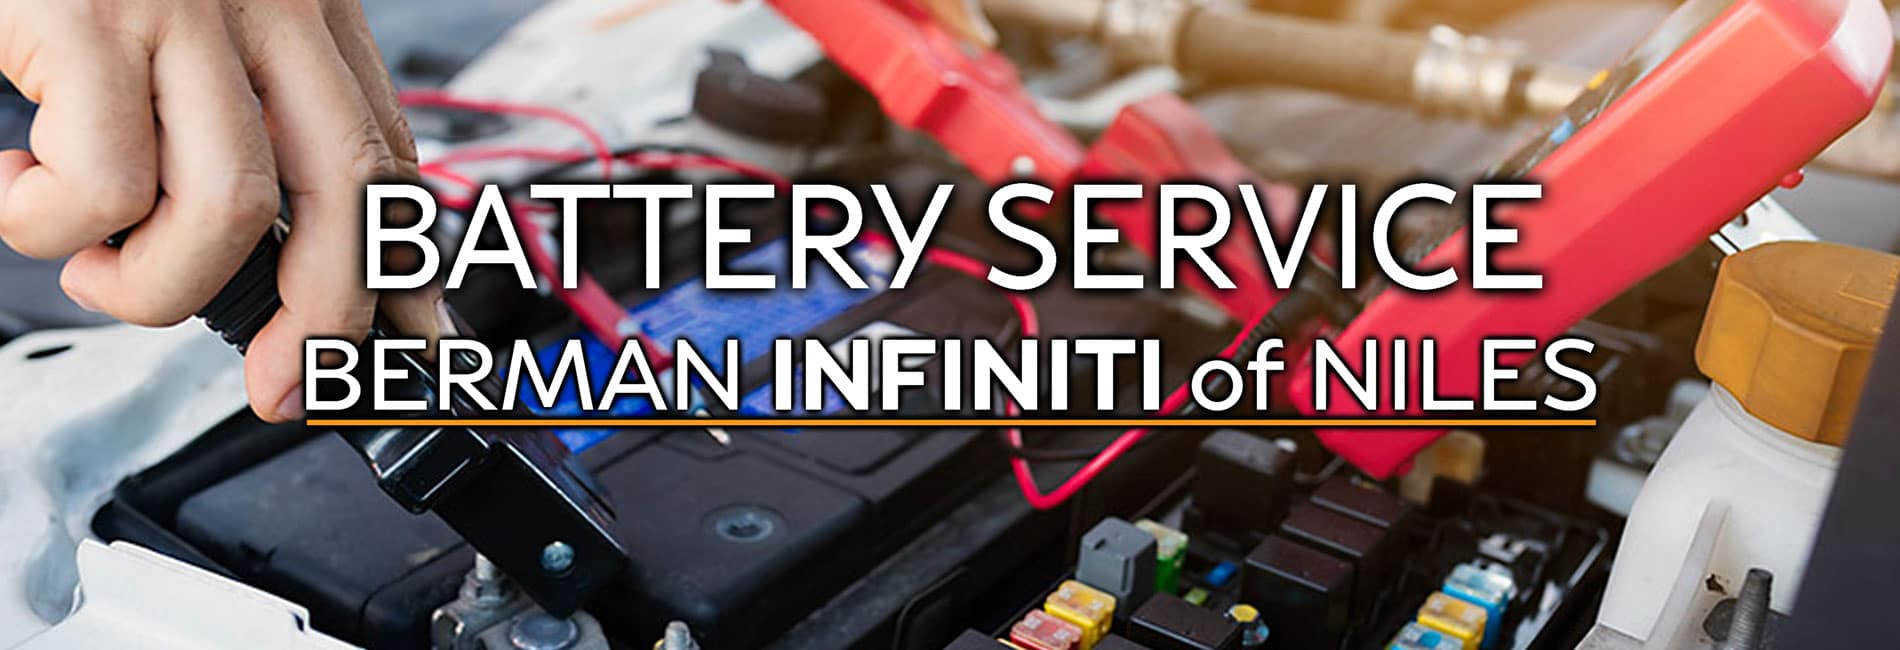 INFINITI Battery Service at Berman INFINITI of Niles